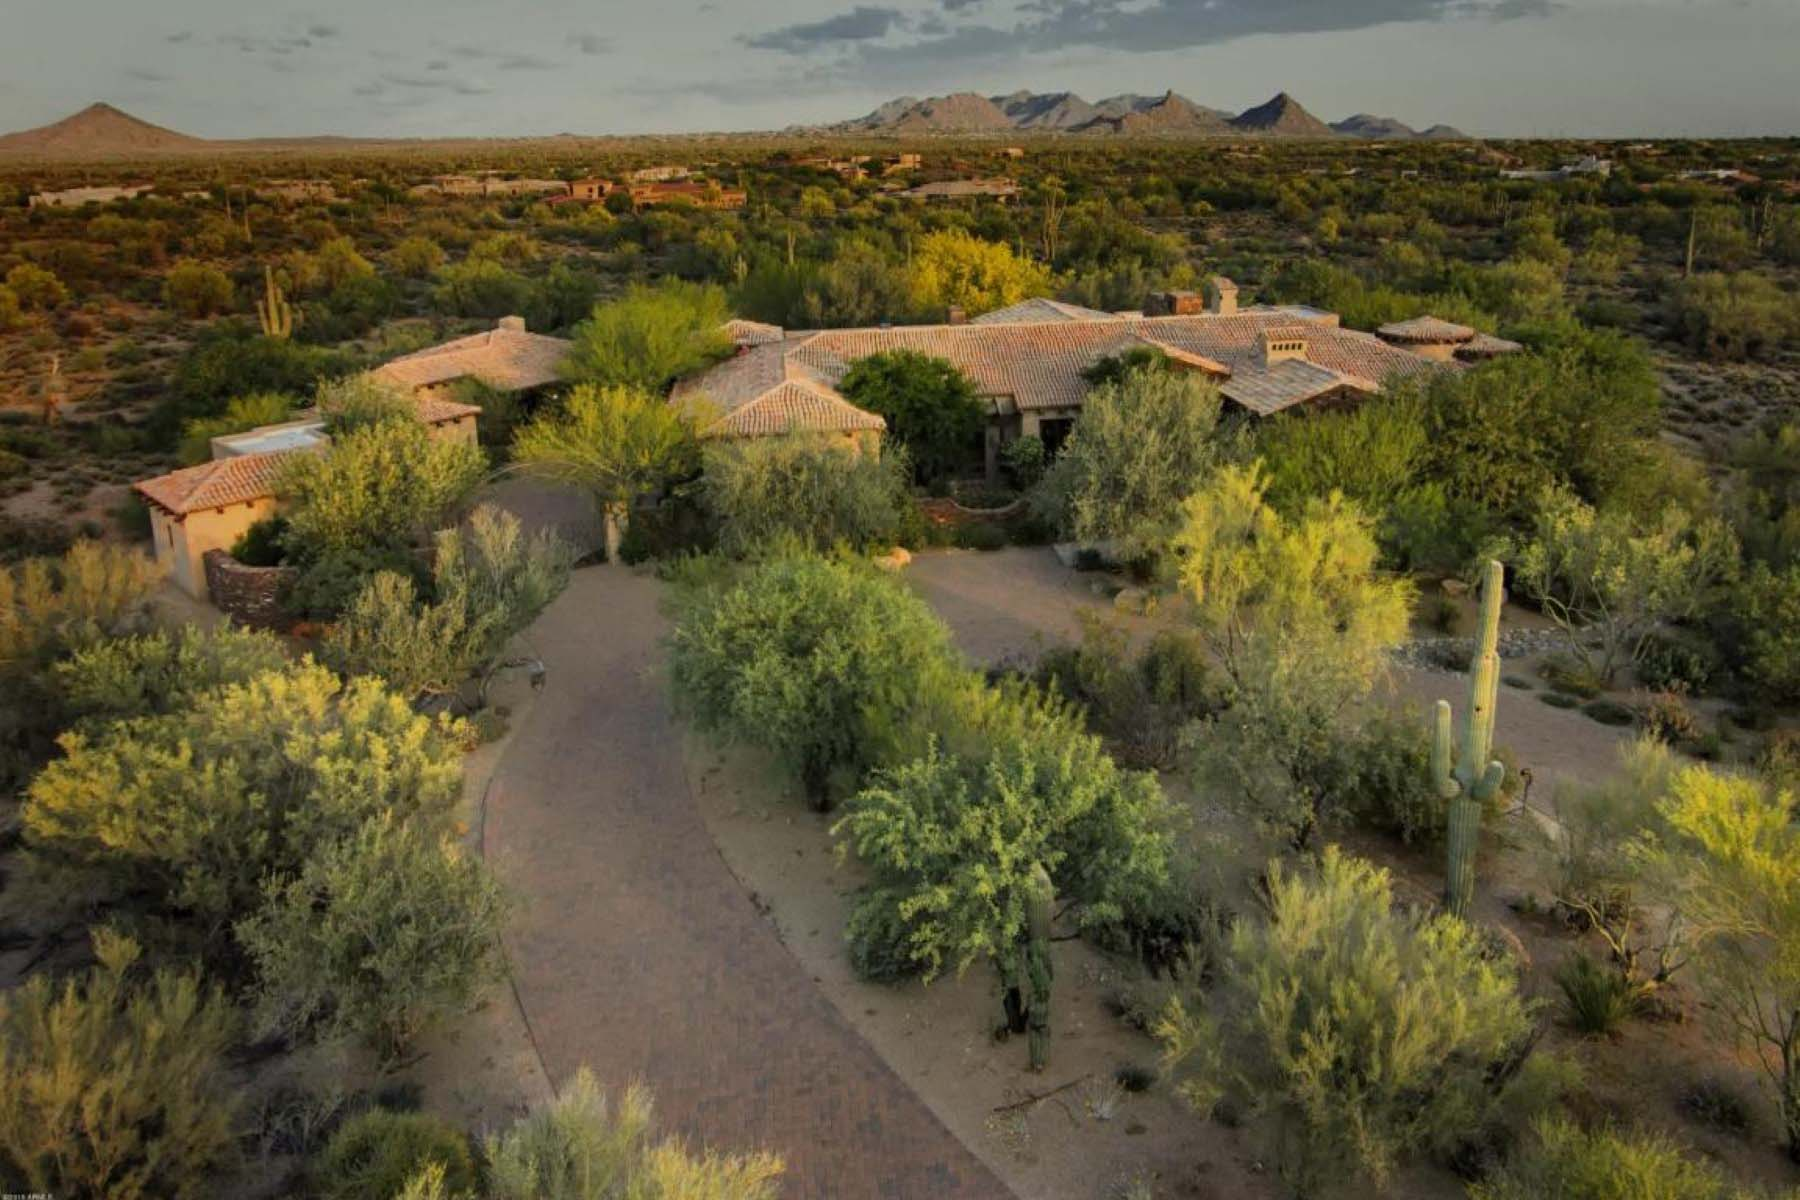 Villa per Vendita alle ore Timeless and elegant family estate on three acres in Whisper Rock Estates. 8525 E WHISPER ROCK TRL Scottsdale, Arizona 85266 Stati Uniti